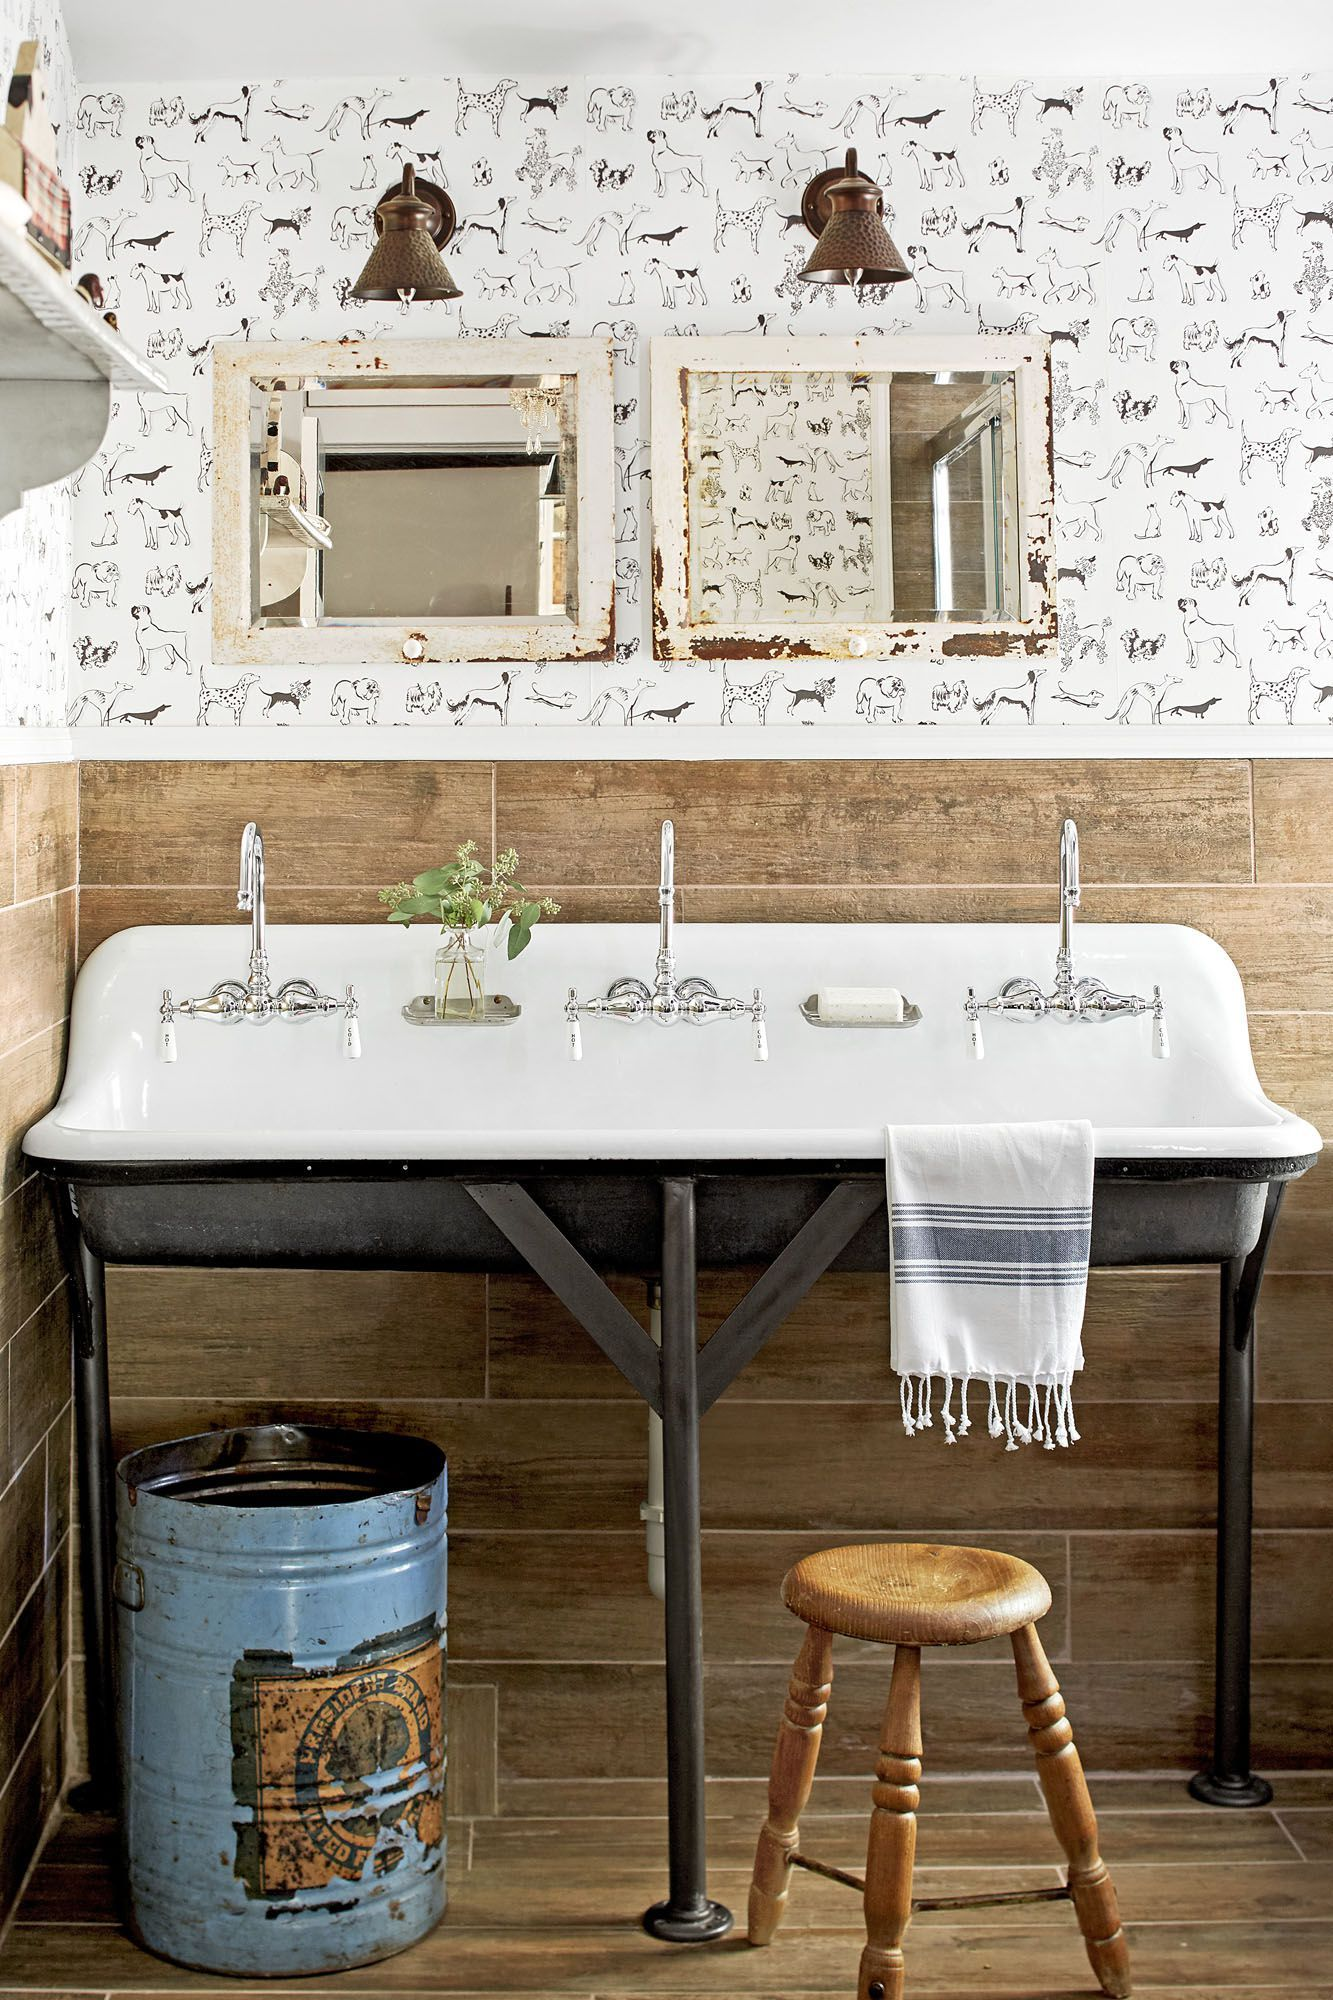 8 Clever Design Ideas That Caught My Eye Diy bathroom